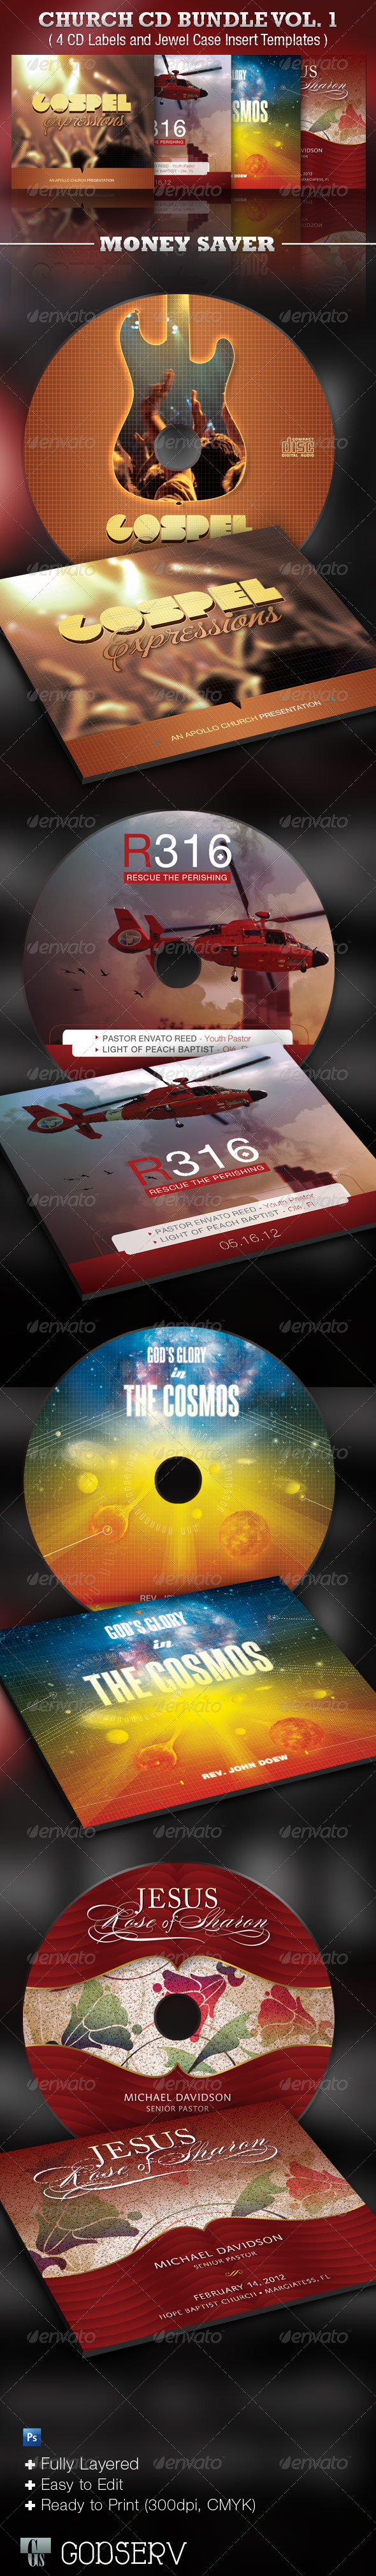 The Church CD Template Bundle Vol. 1 - CD &amp; DVD artwork Print Templates